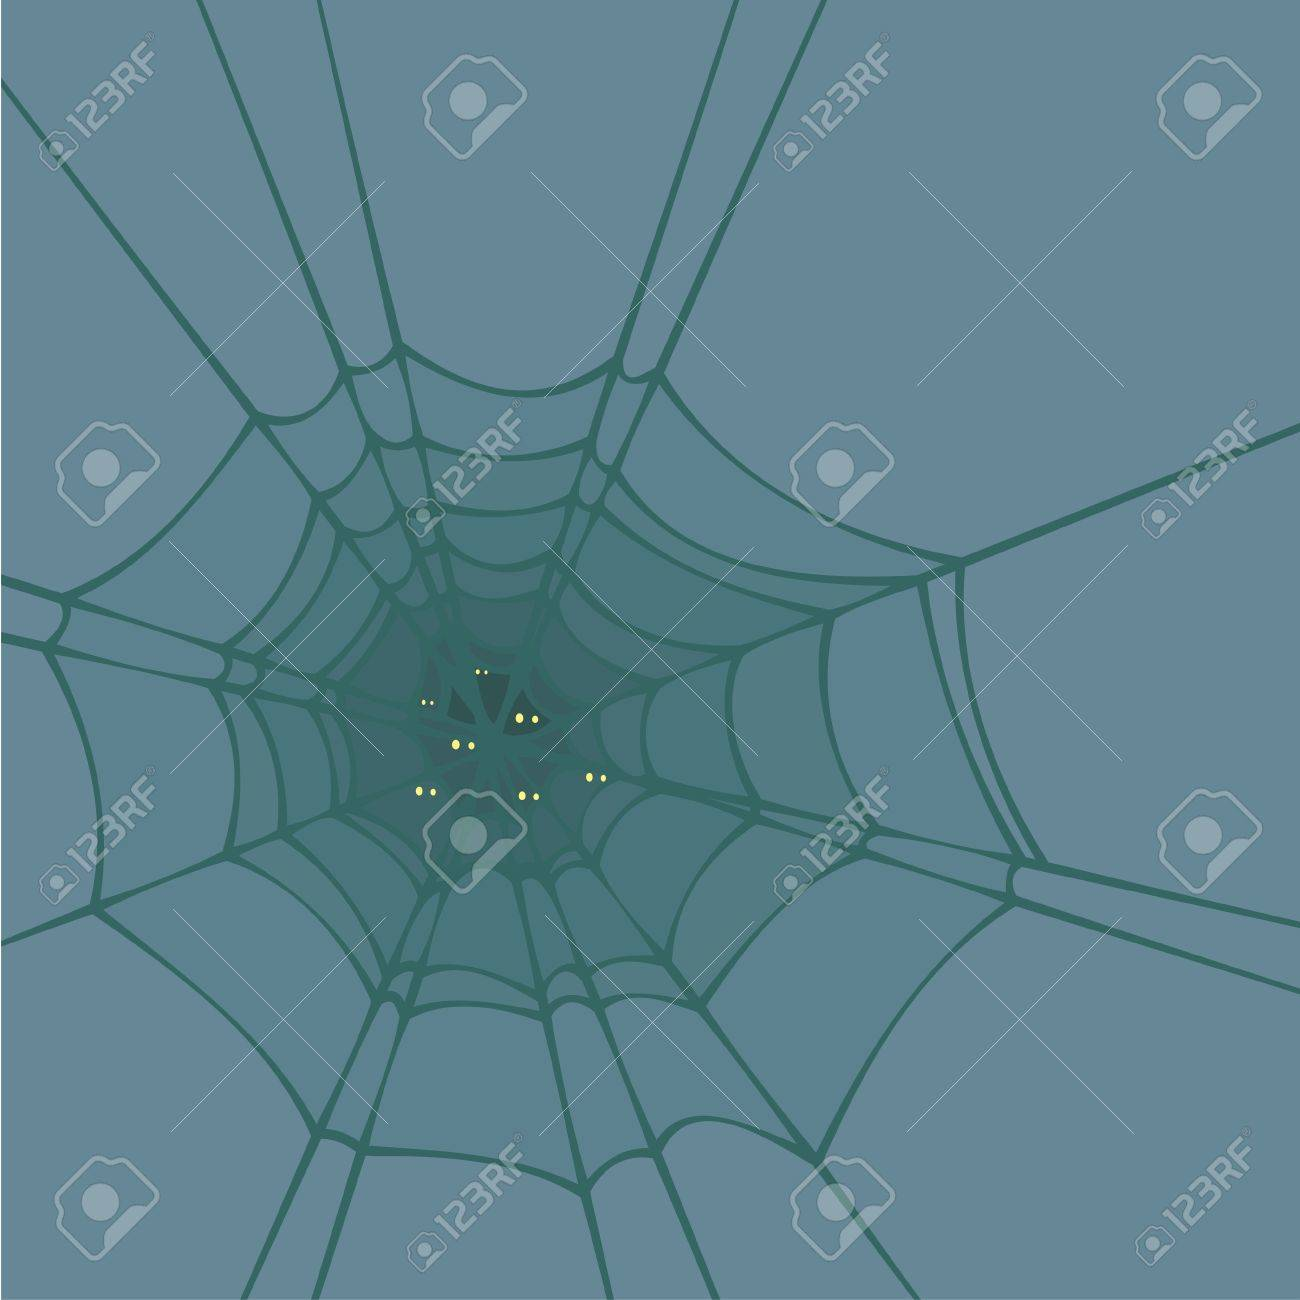 Spider web Stock Vector - 15889268